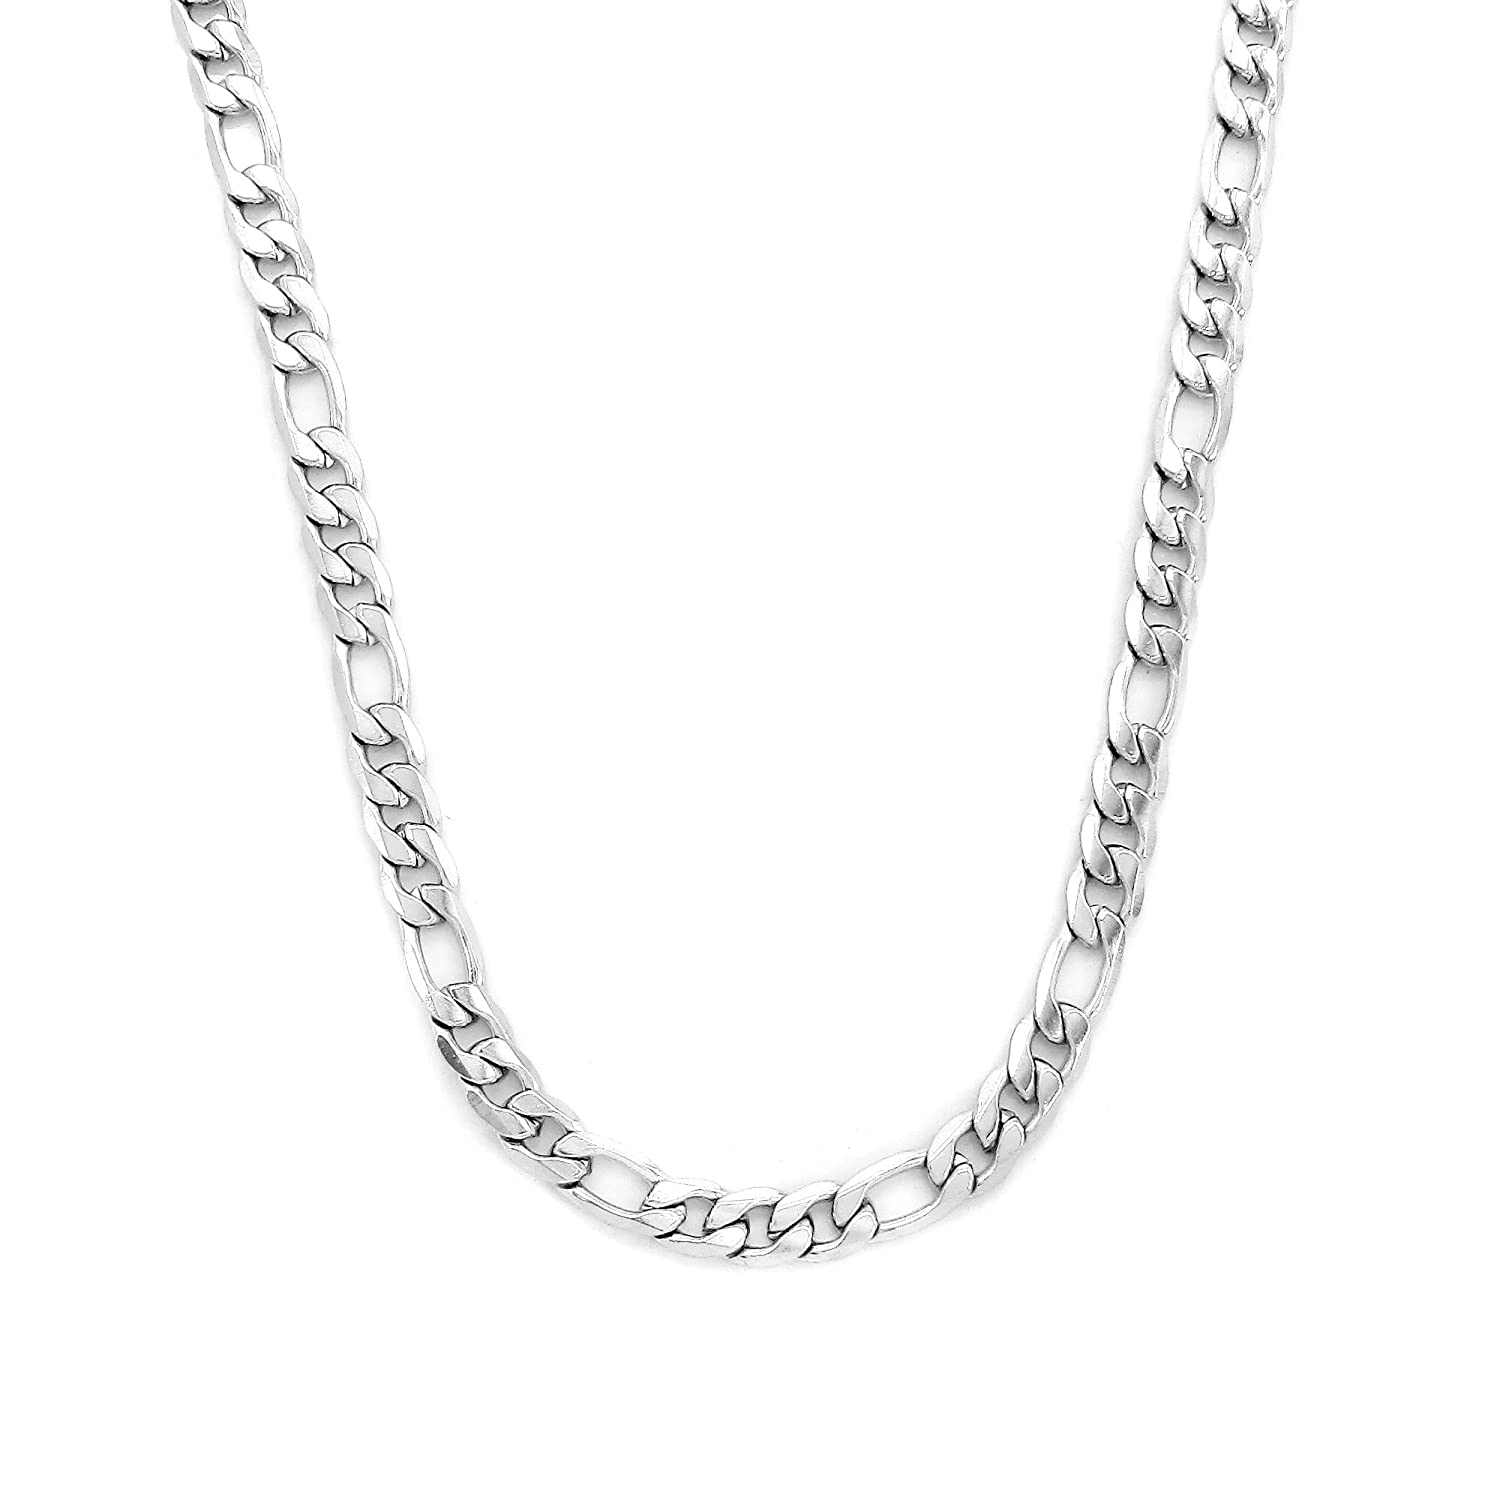 Pure 316 - Surgical Stainless Steel (316L) Figaro Link Necklace - 22 - 26 Inch Leviev Ltd. FIG7-SSN-22